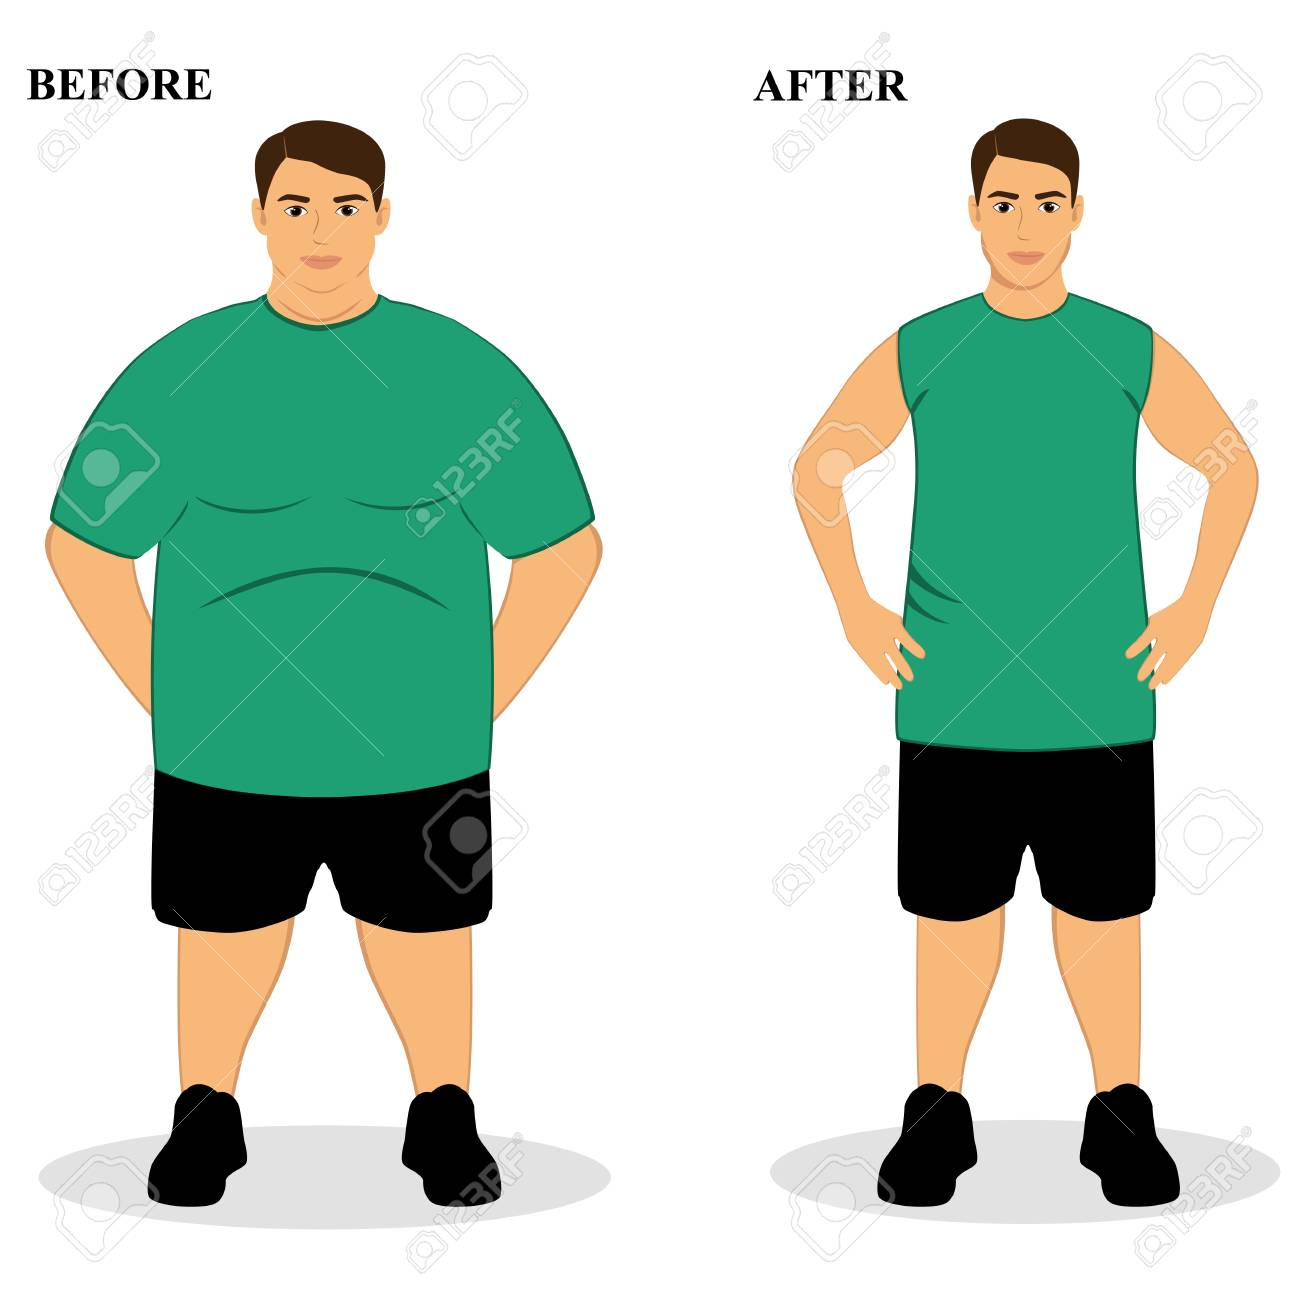 thin and fat obesity from fat to thin before and after healthy